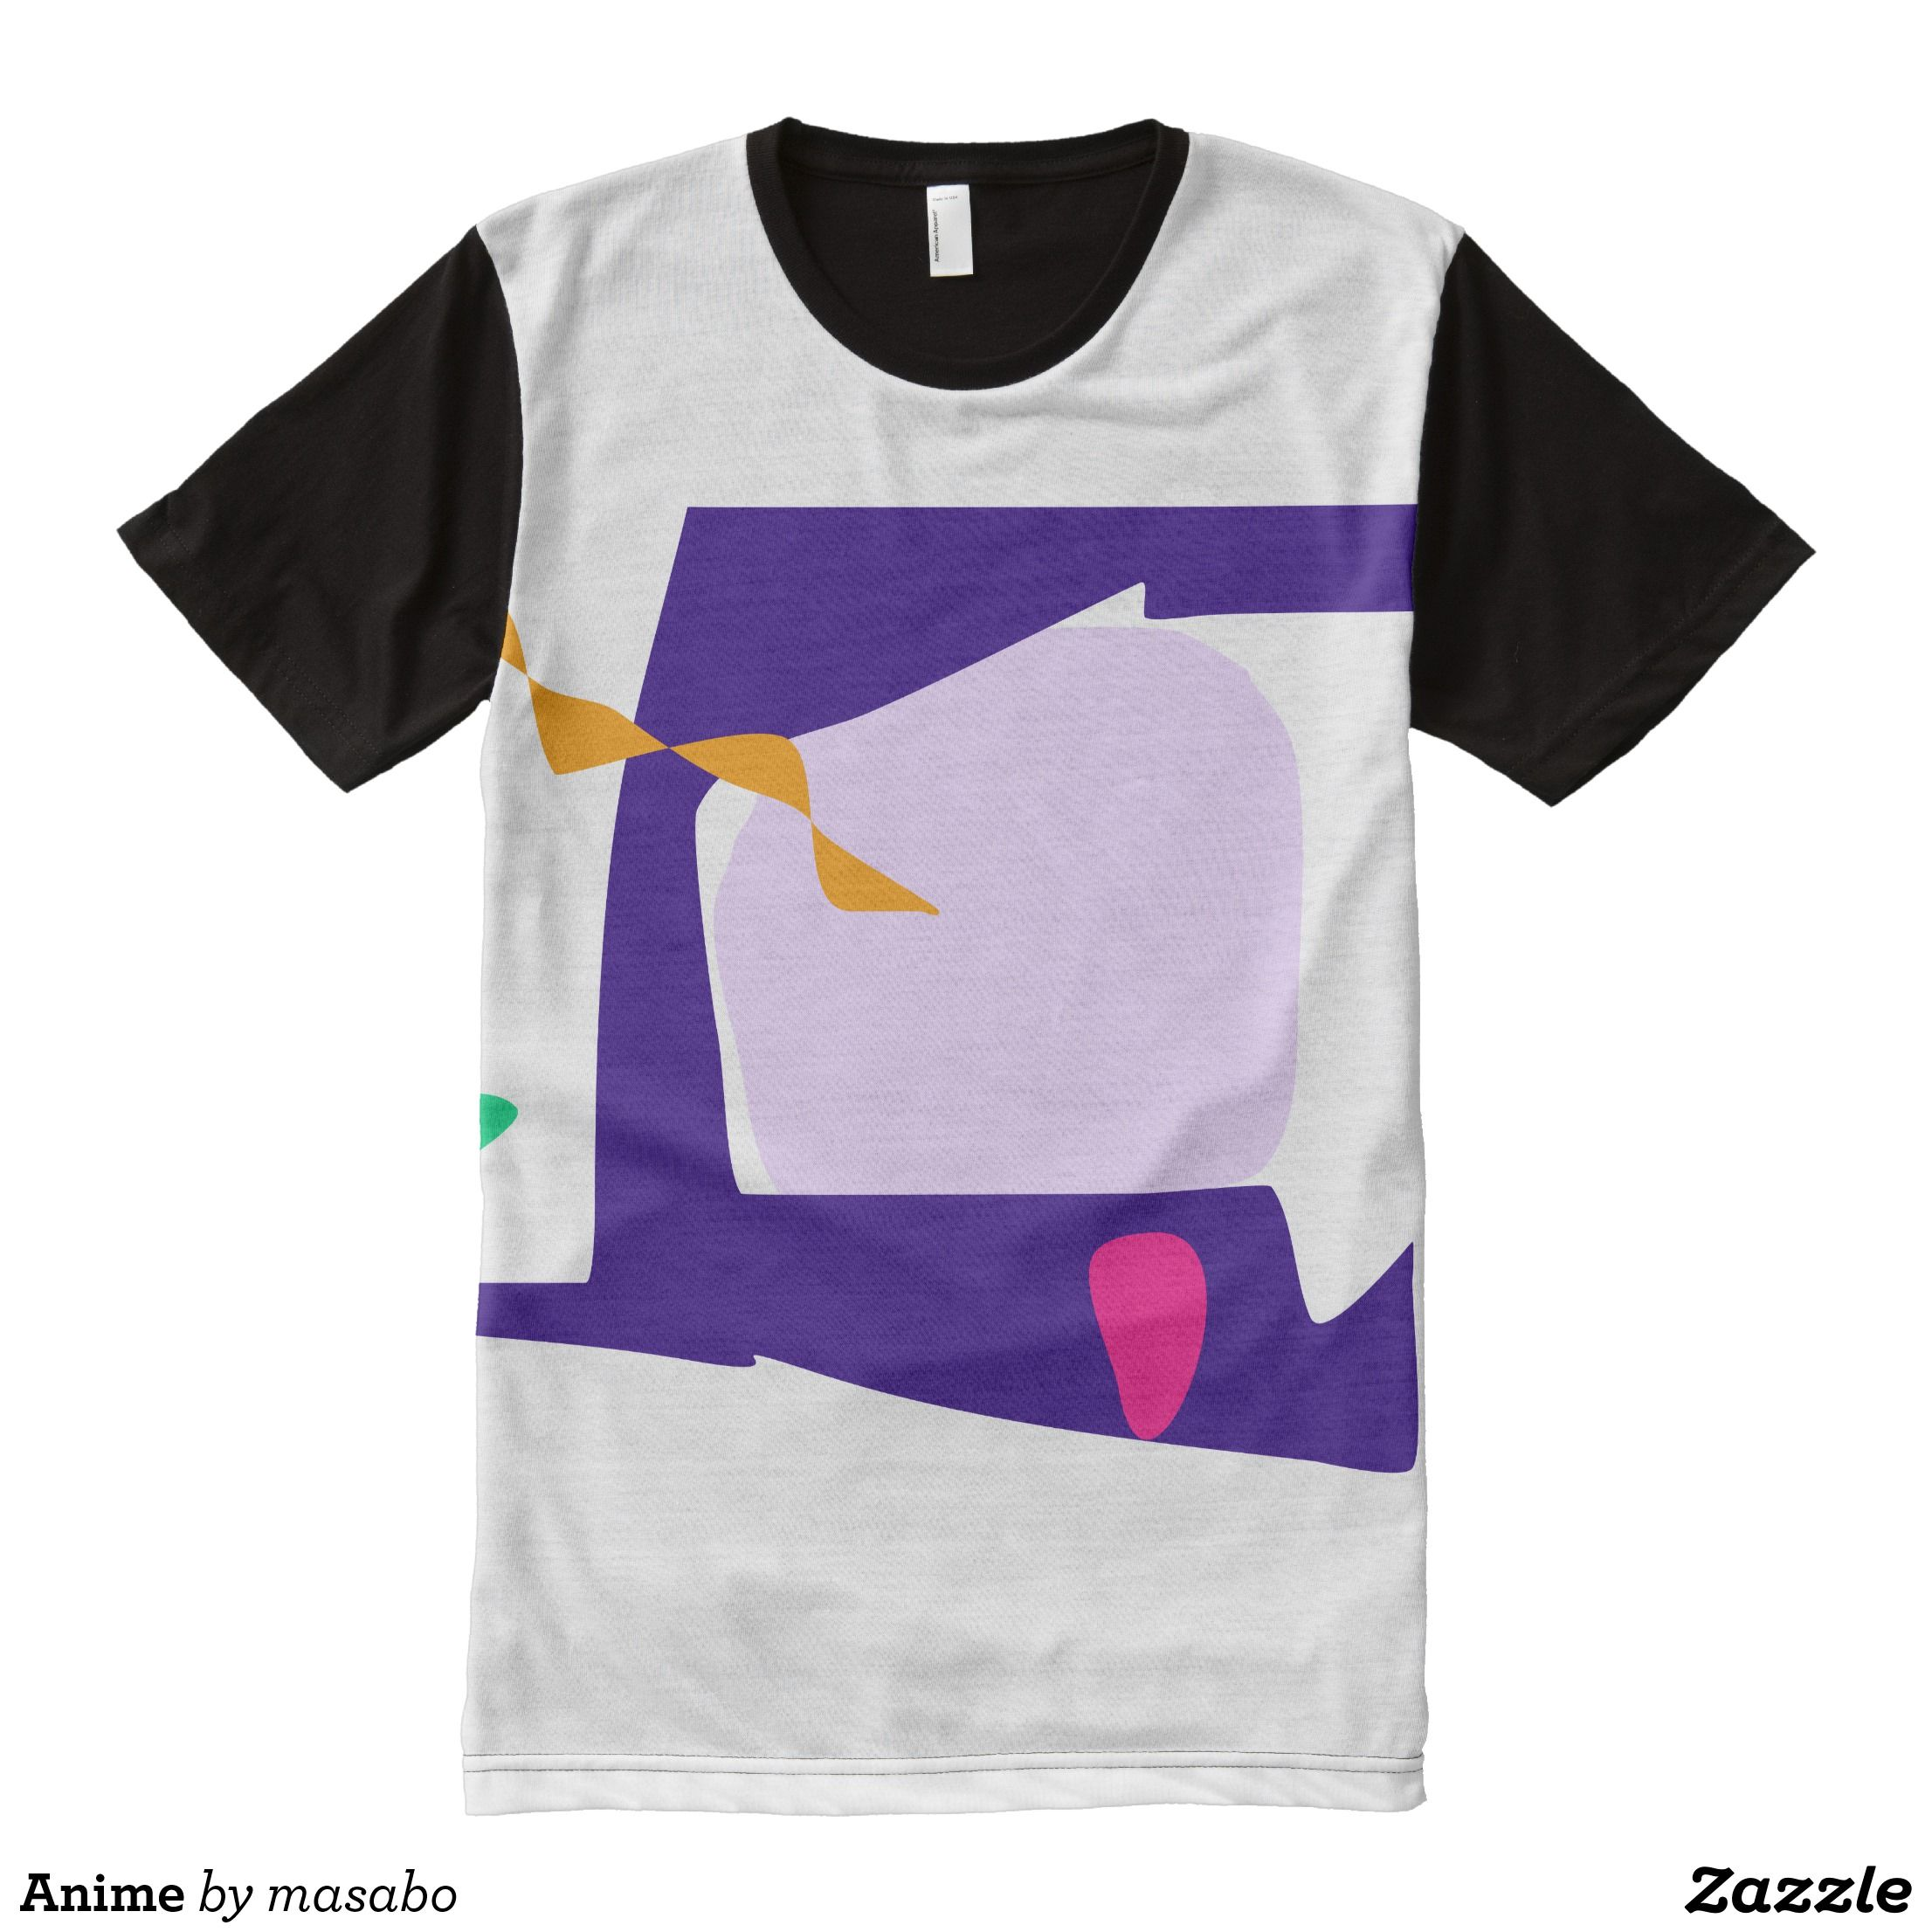 Anime All Over Print Shirt Visually Stunning Graphic T Shirts By